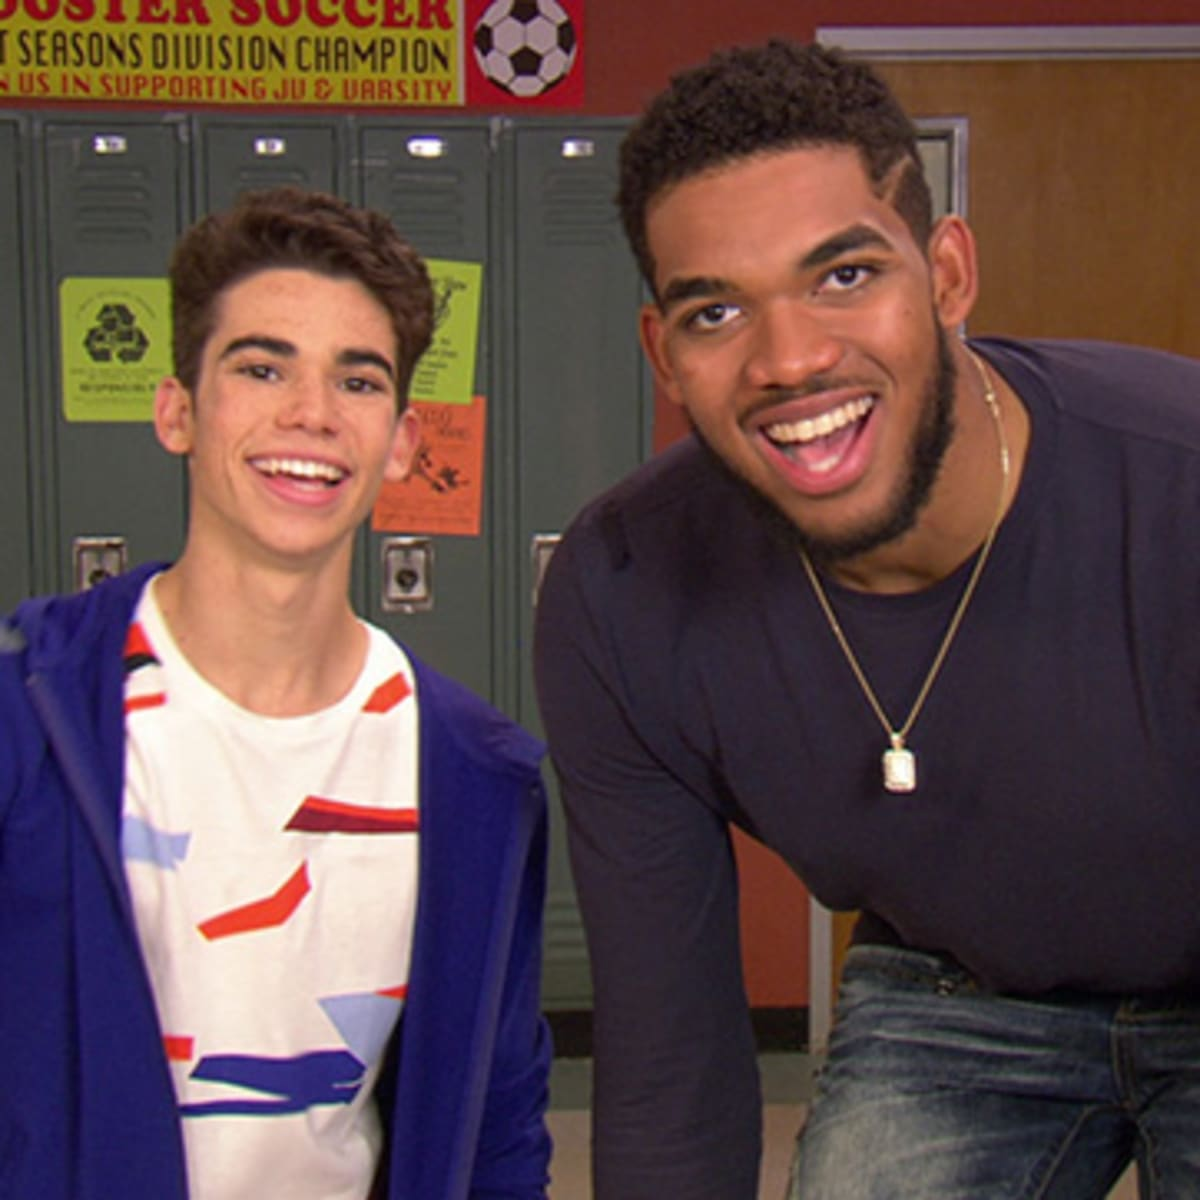 Karl Anthony Towns Stops By Gamer S Guide To Pretty Much Everything Si Kids Sports News For Kids Kids Games And More